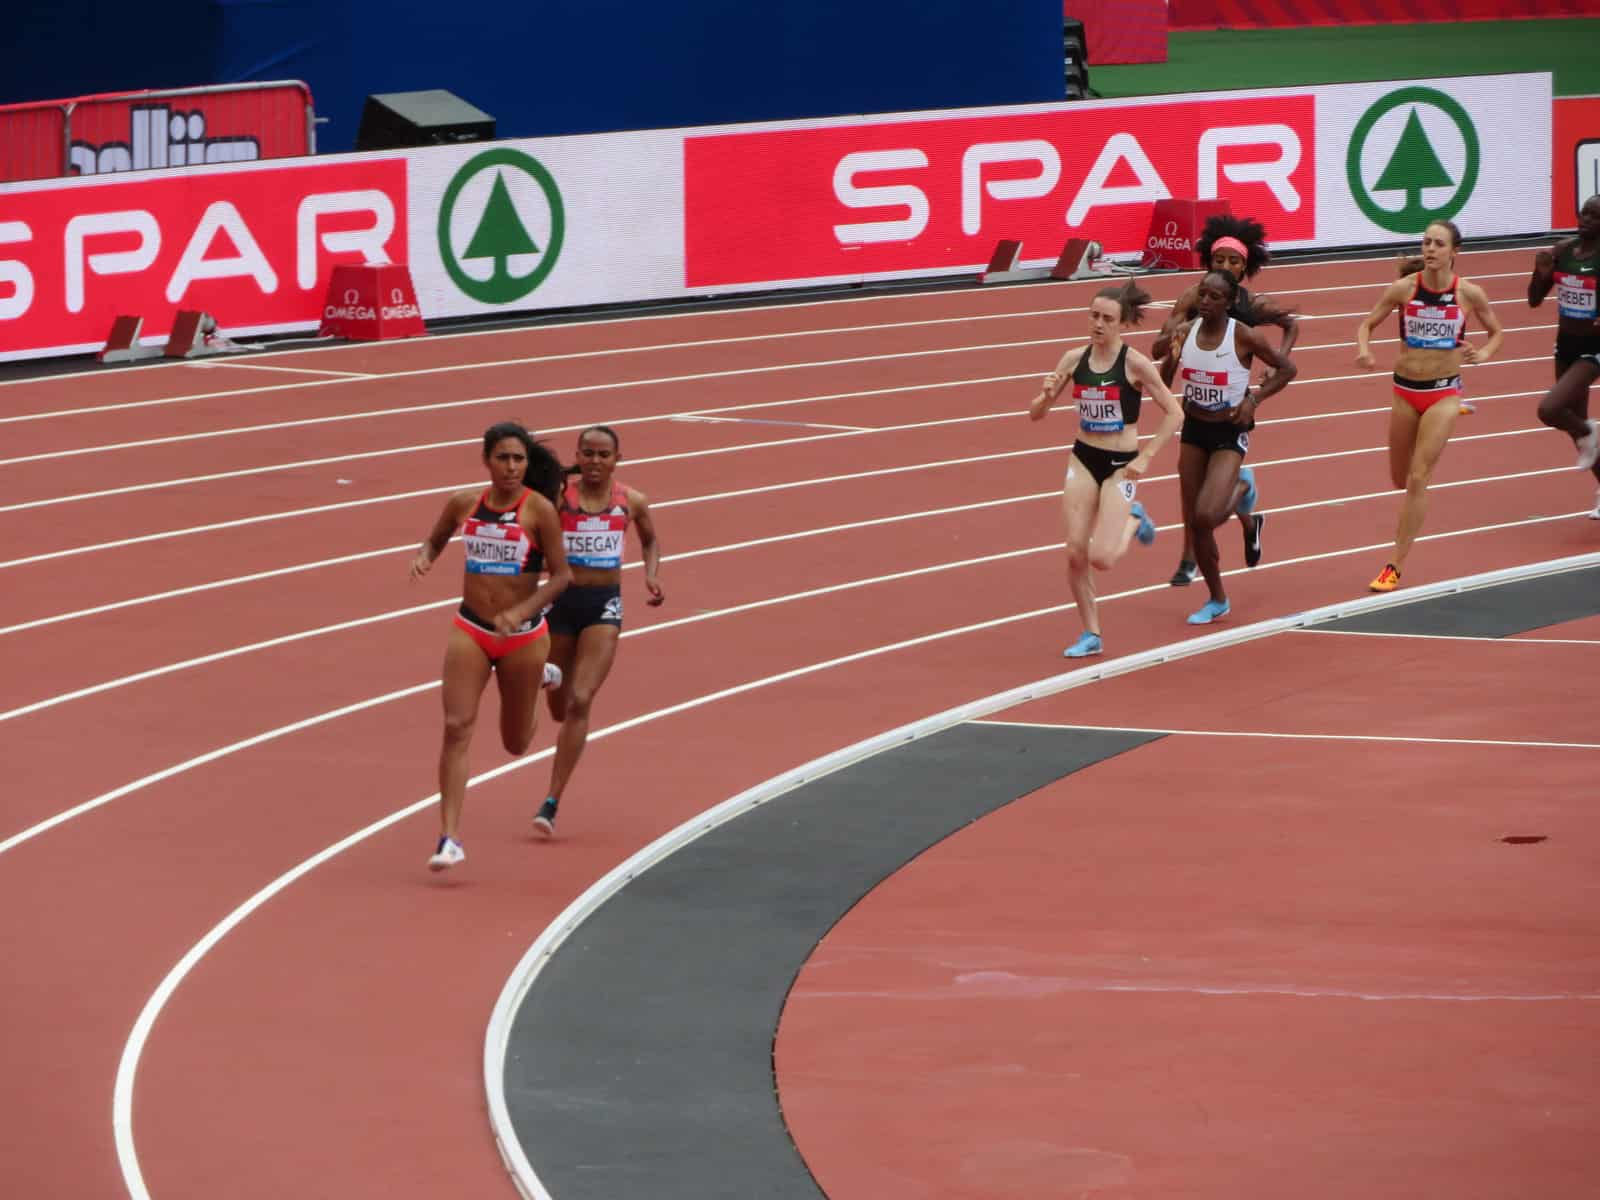 Laura Muir running in the mile race during the Muller Anniversary Games